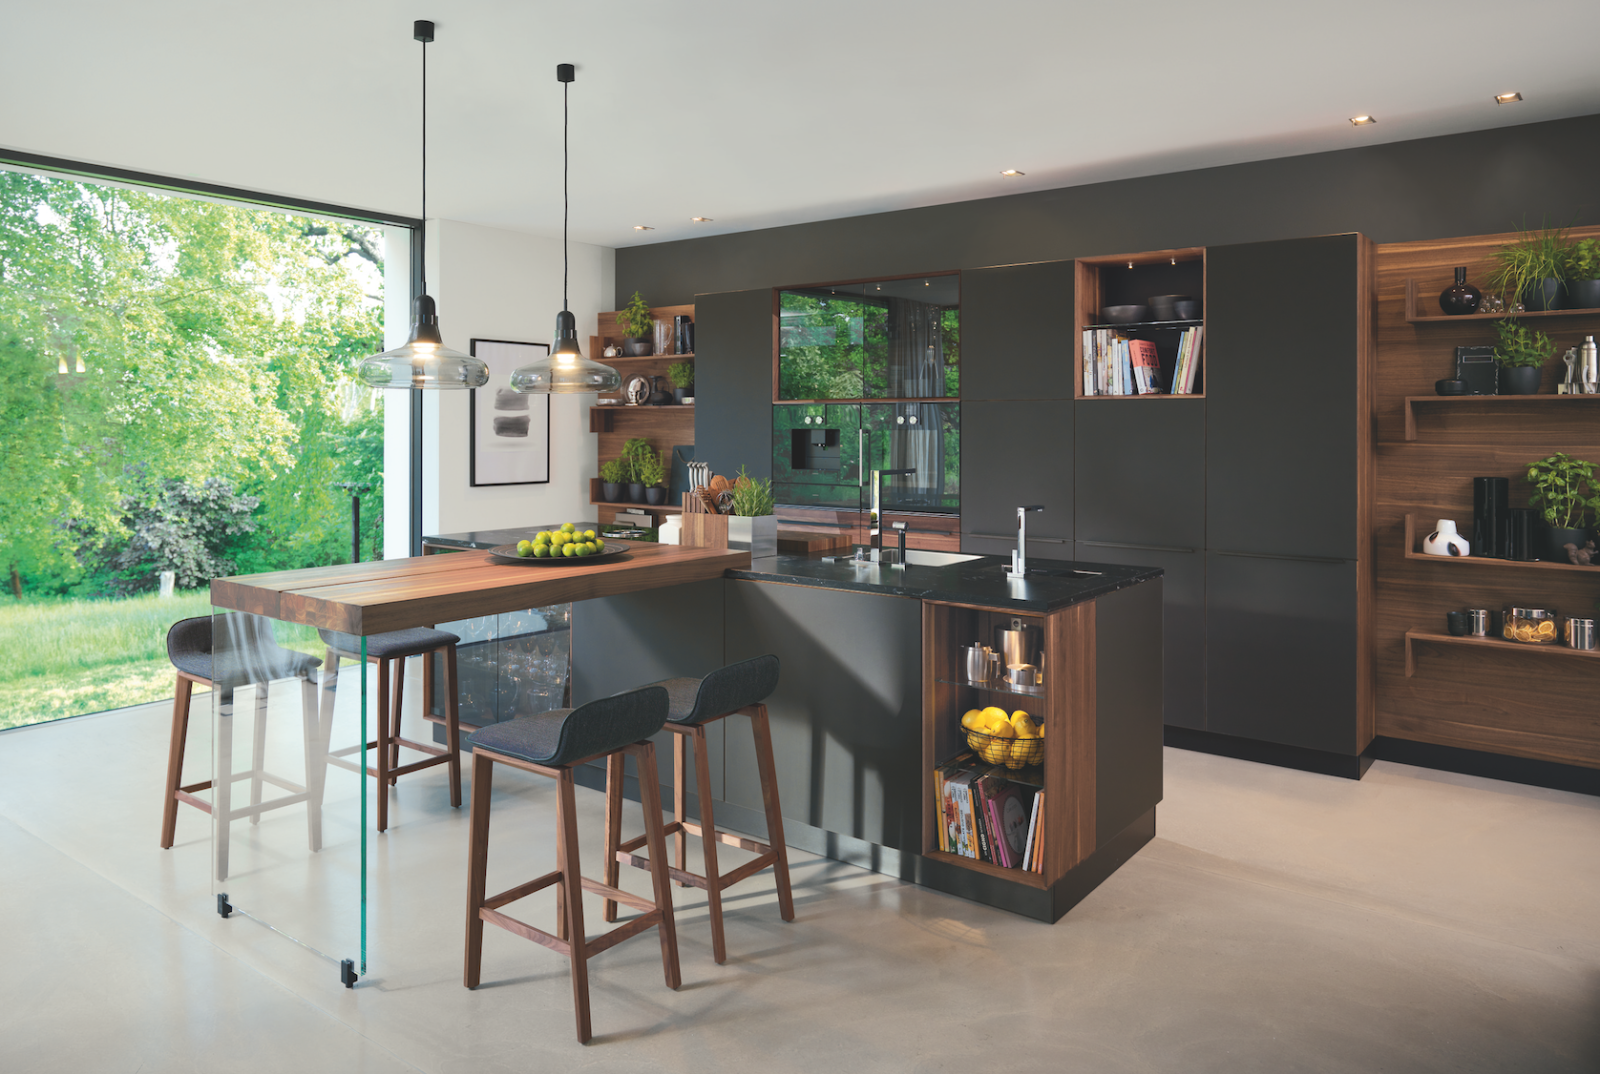 Kitchen trends 2017 - Copper Accents